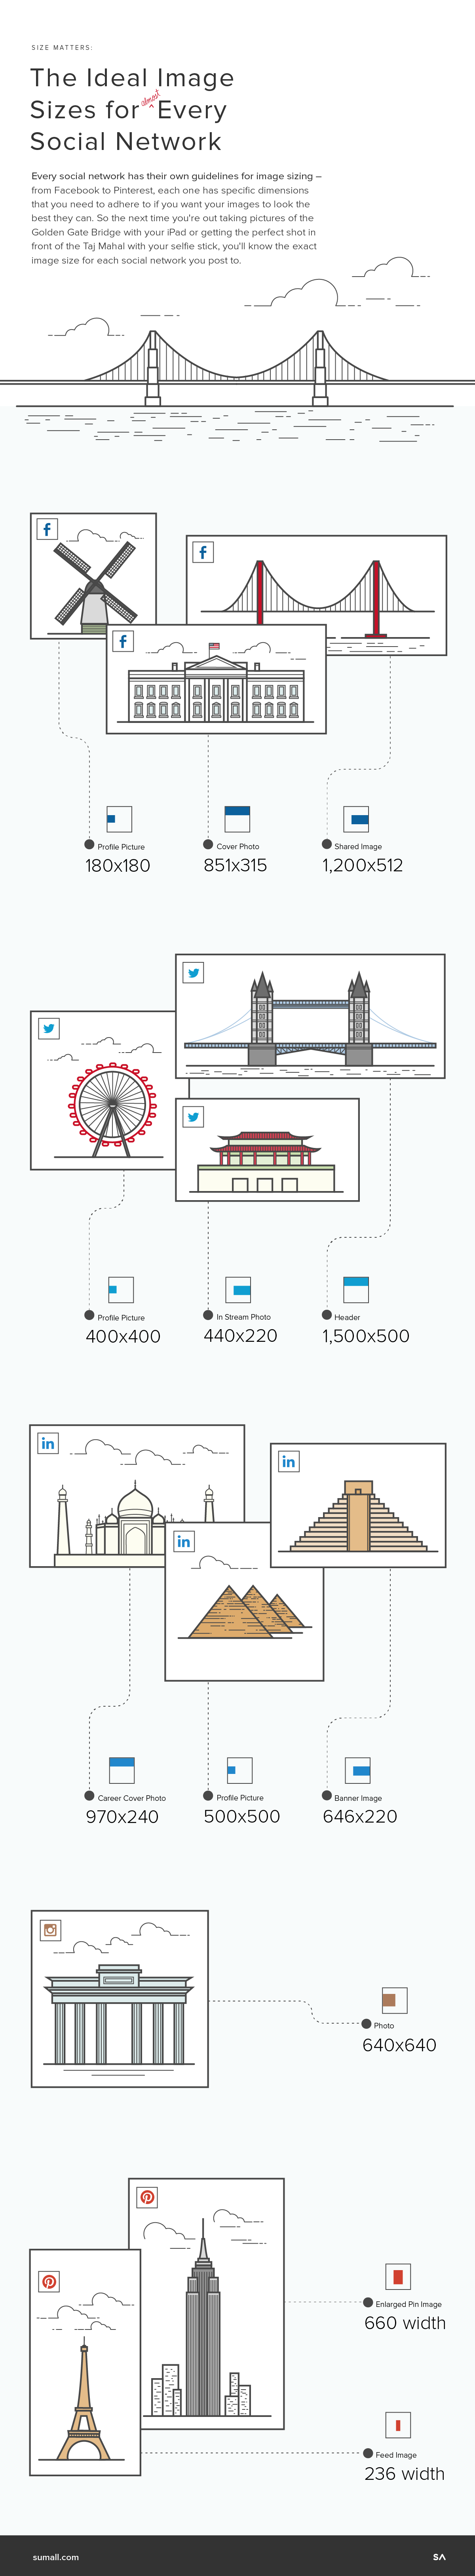 The ideal image size for almost every social network. #infographic (More design inspiration at www.aldenchong.com)